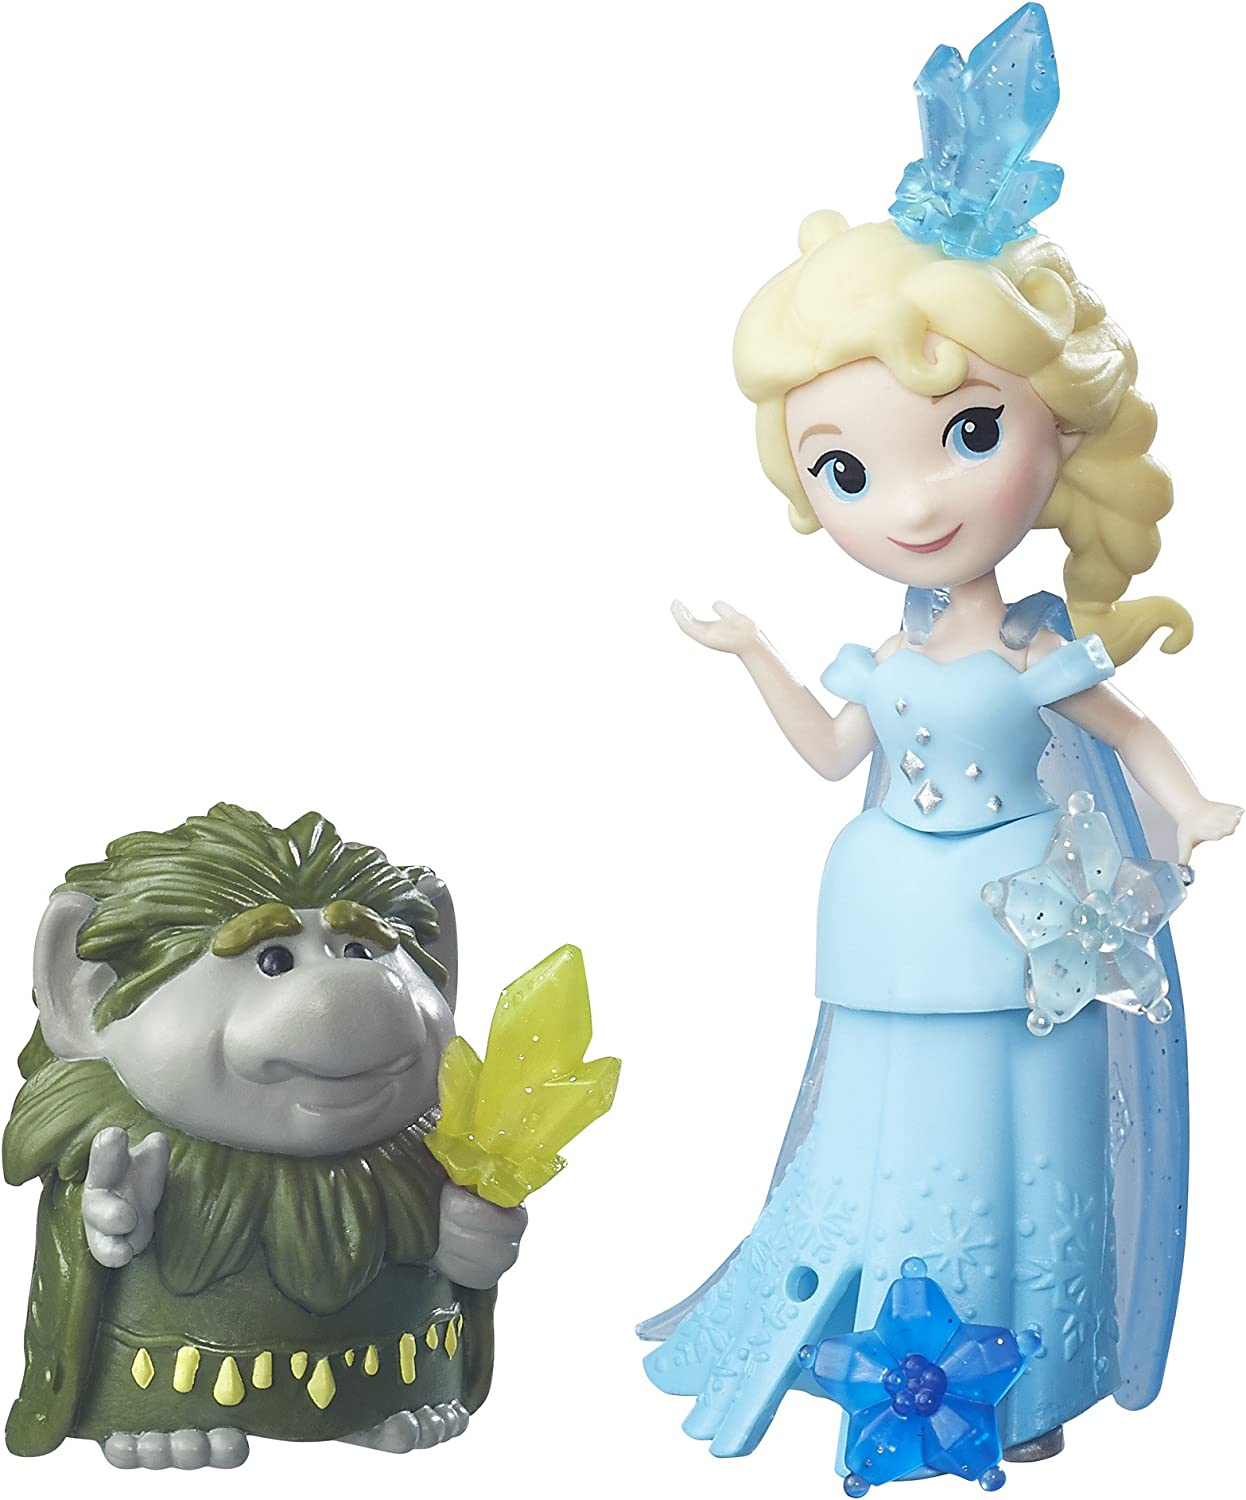 Disney Frozen Small Elsa At the price Doll Pabbie Max 49% OFF